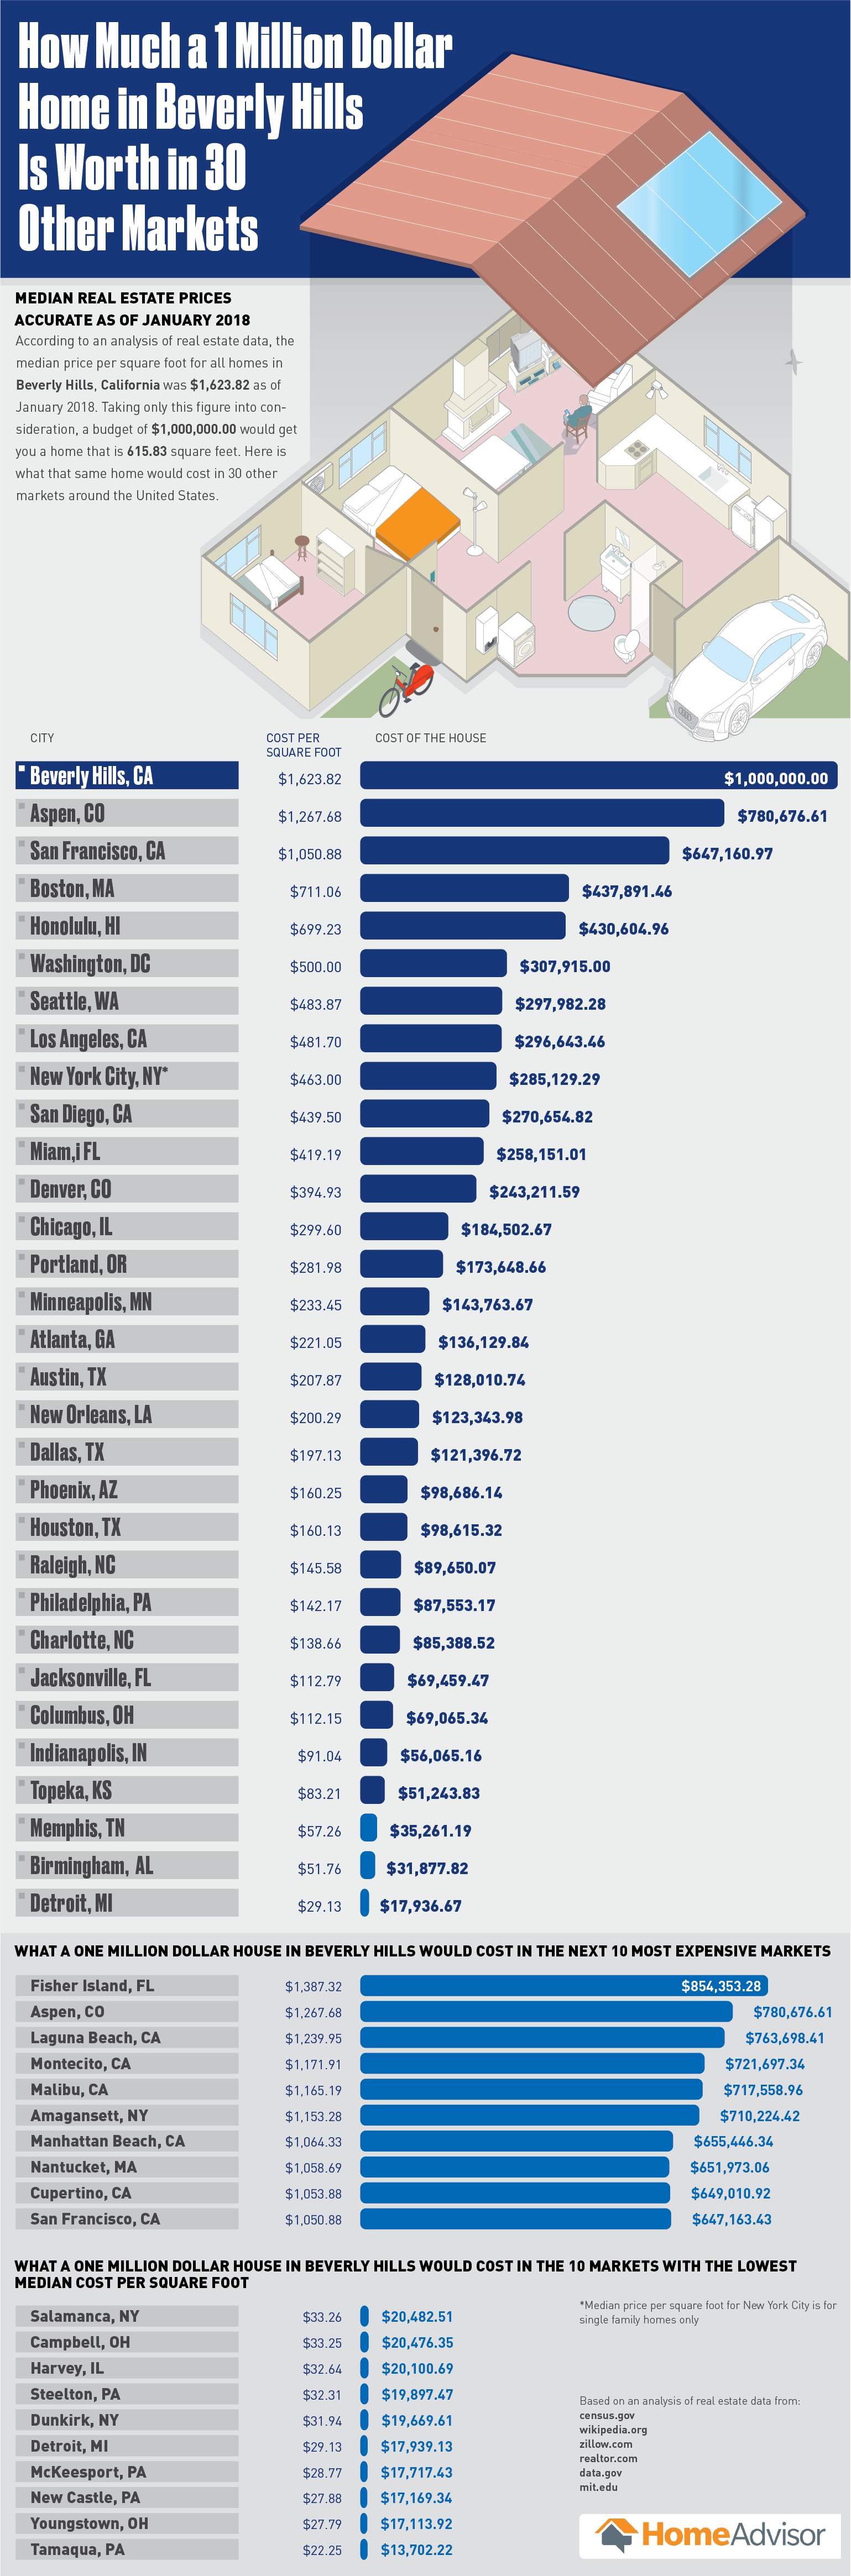 How Much a One Million Dollar Home in Beverly Hills is Worth in 30 Other Markets - HomeAdvisor.com - Infographic